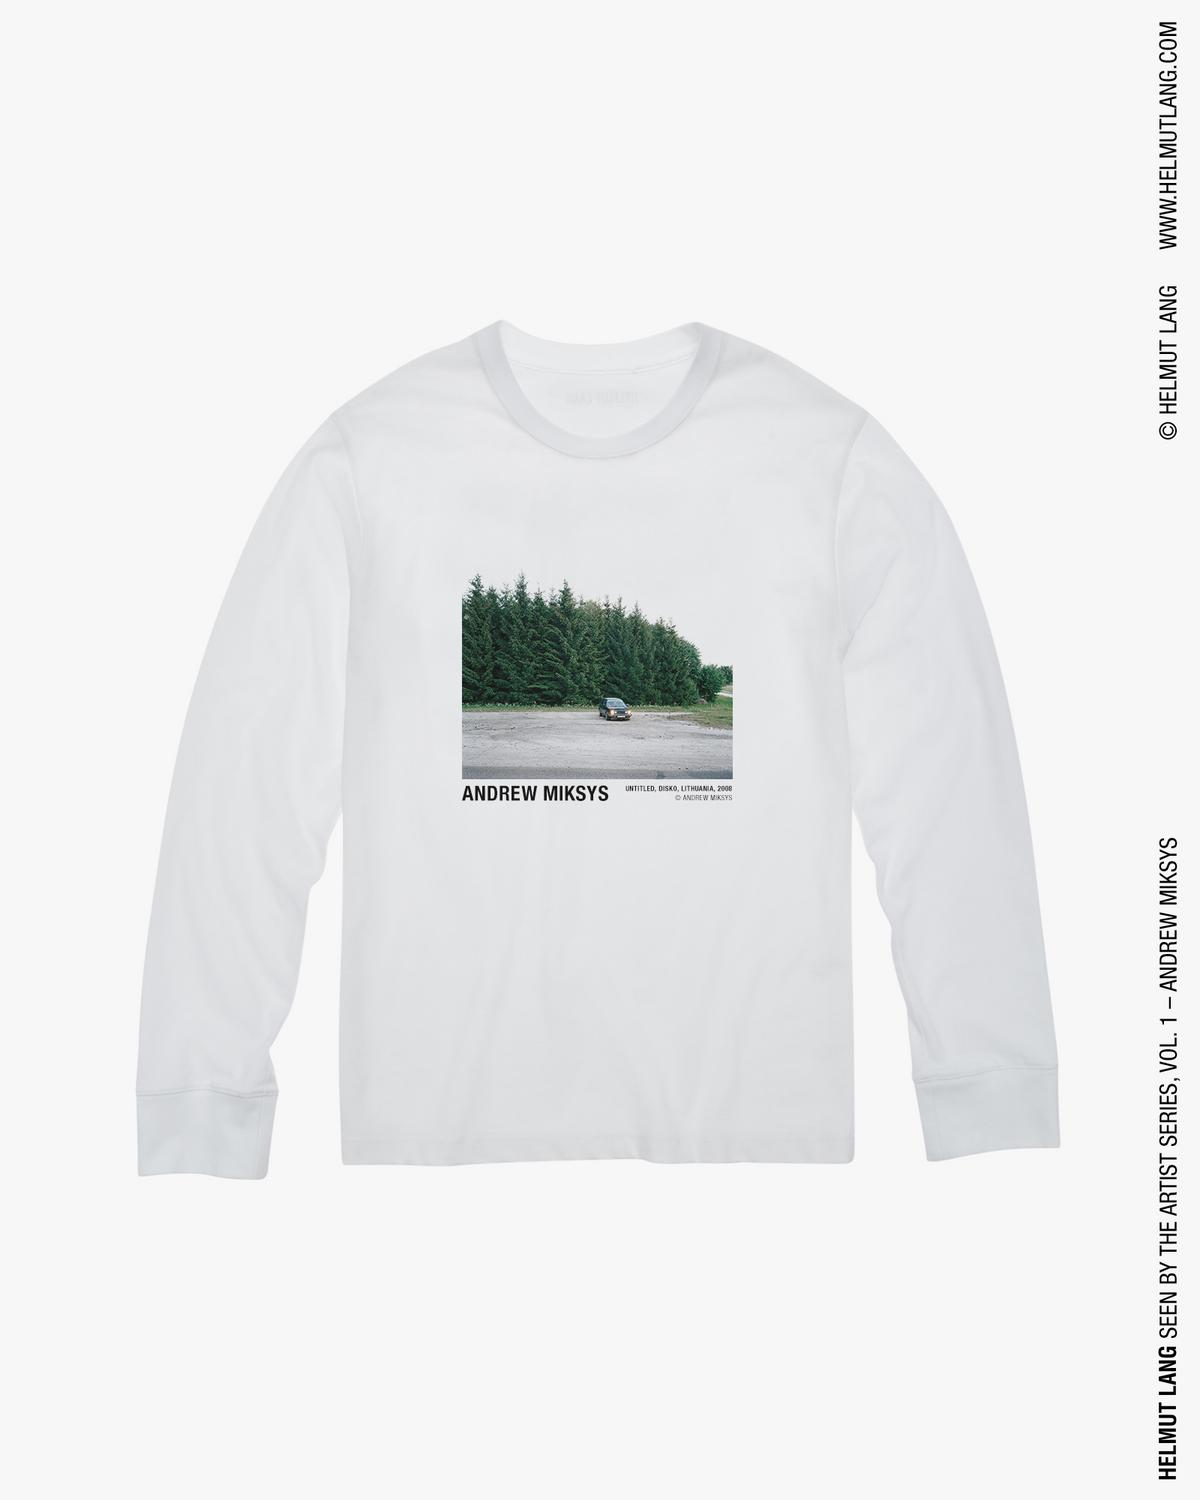 ANDREW MIKSYS PARKING LOT LONG SLEEVE T-SHIRT